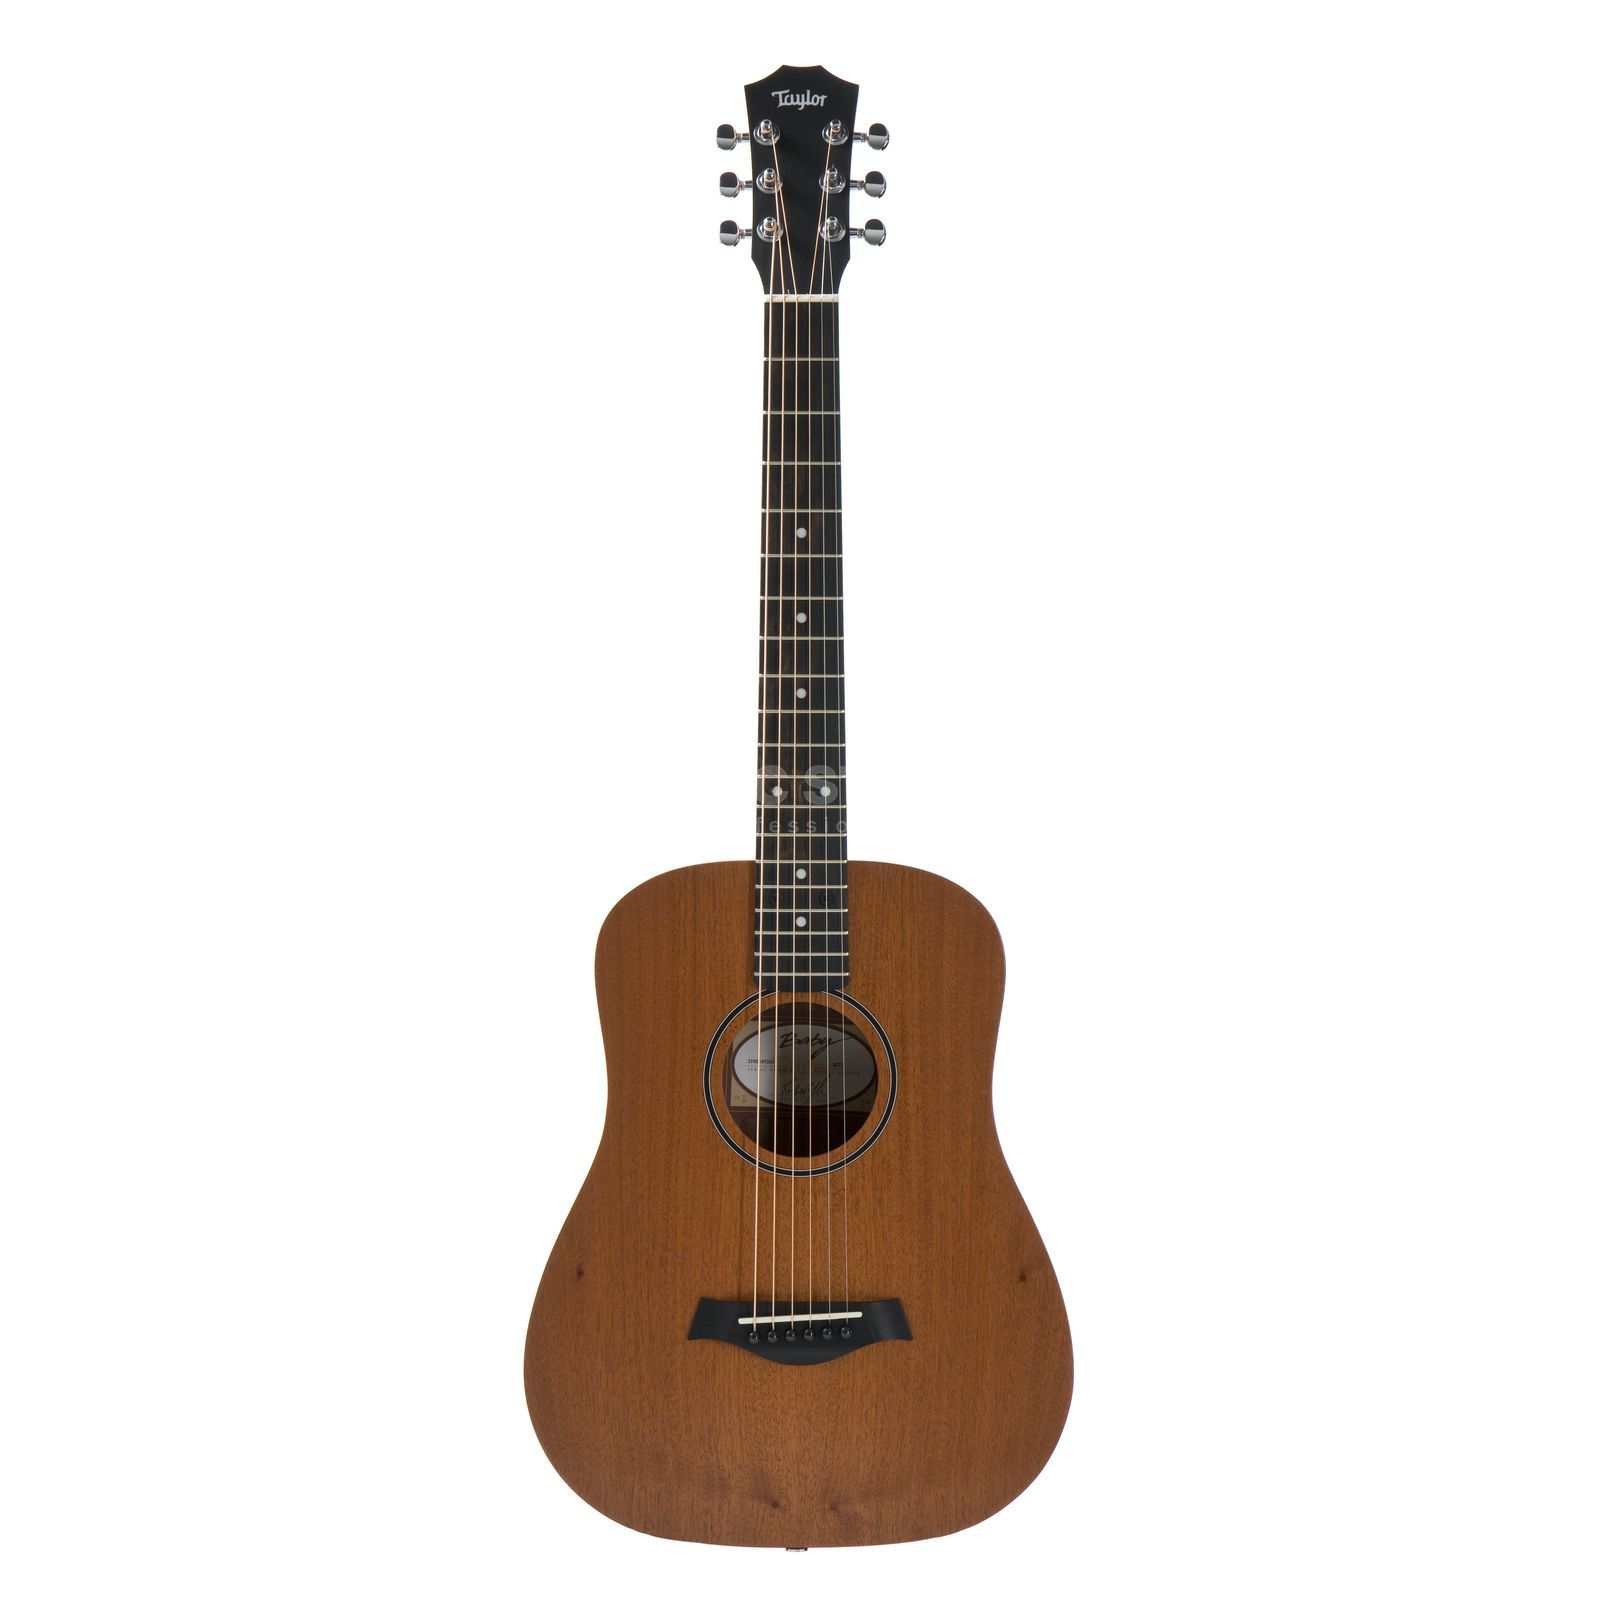 taylor baby taylor m 3 4 guitar mahogany top bag. Black Bedroom Furniture Sets. Home Design Ideas